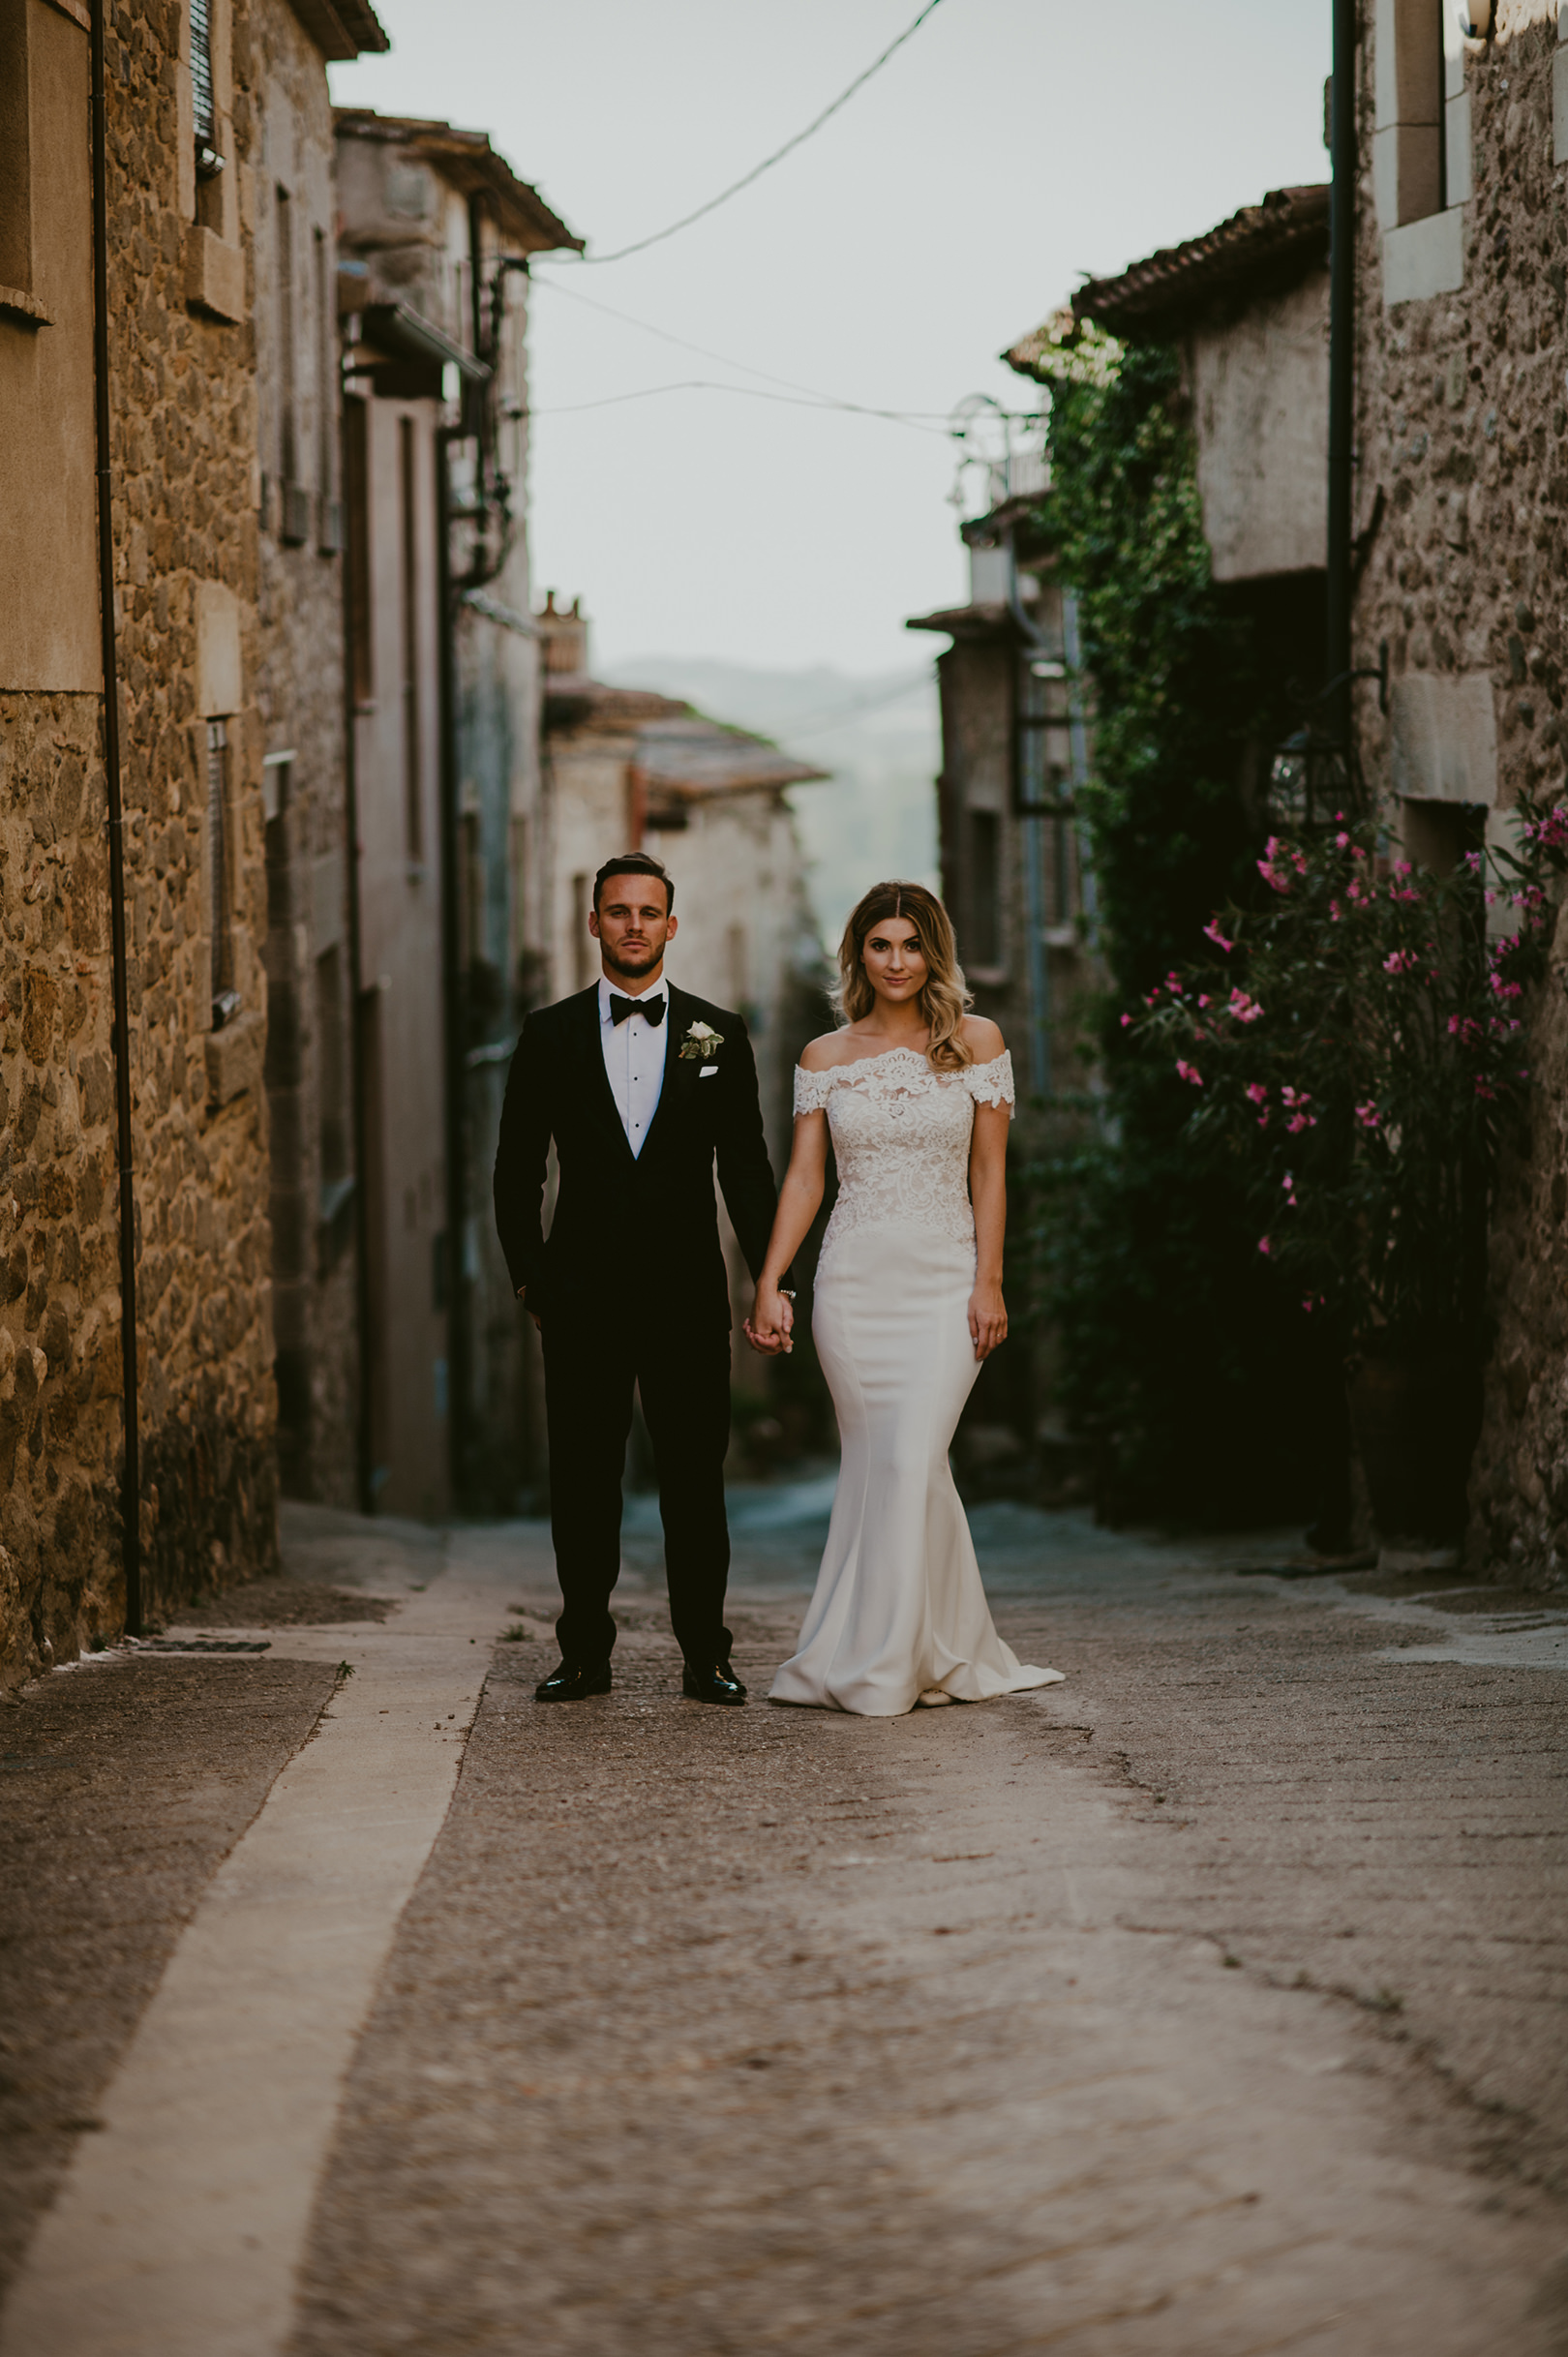 Gorgeous couple photography in Girona Spain